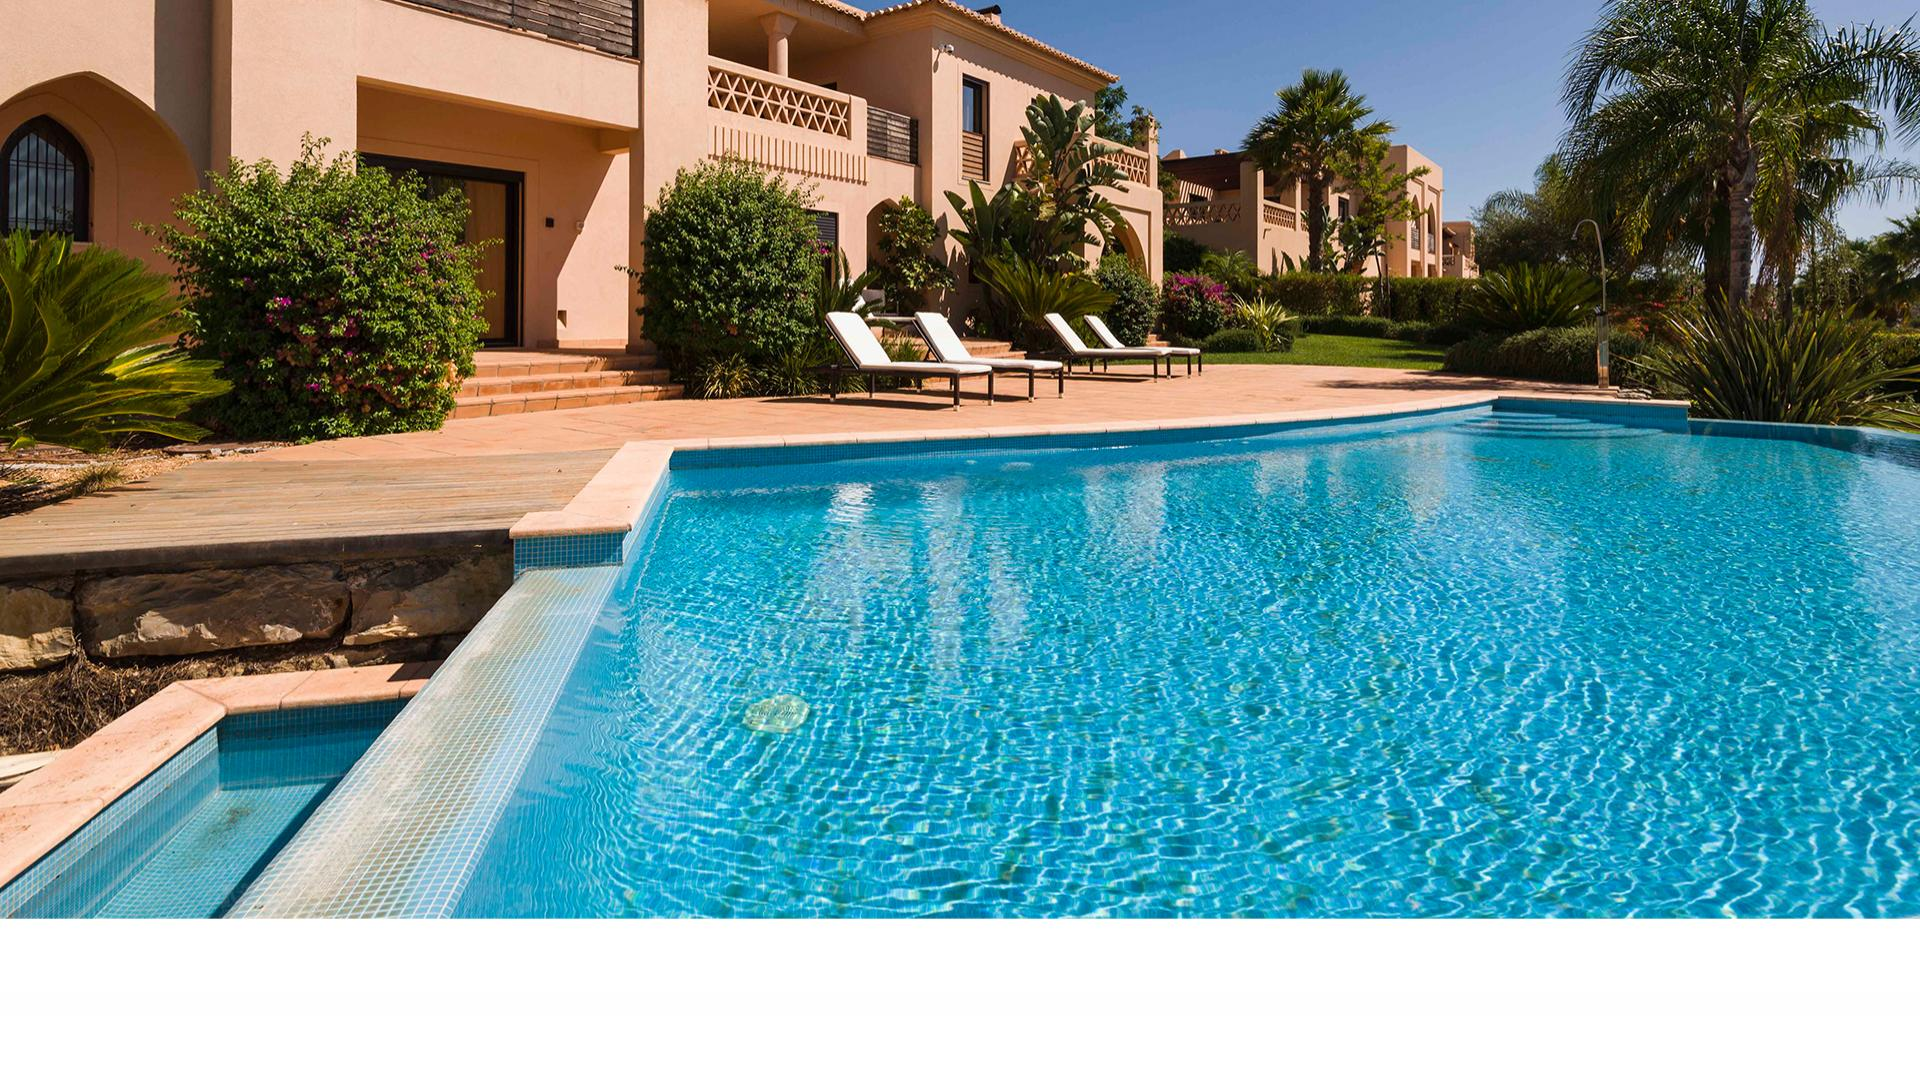 Portugal golden visa properties: living in the Algarve!